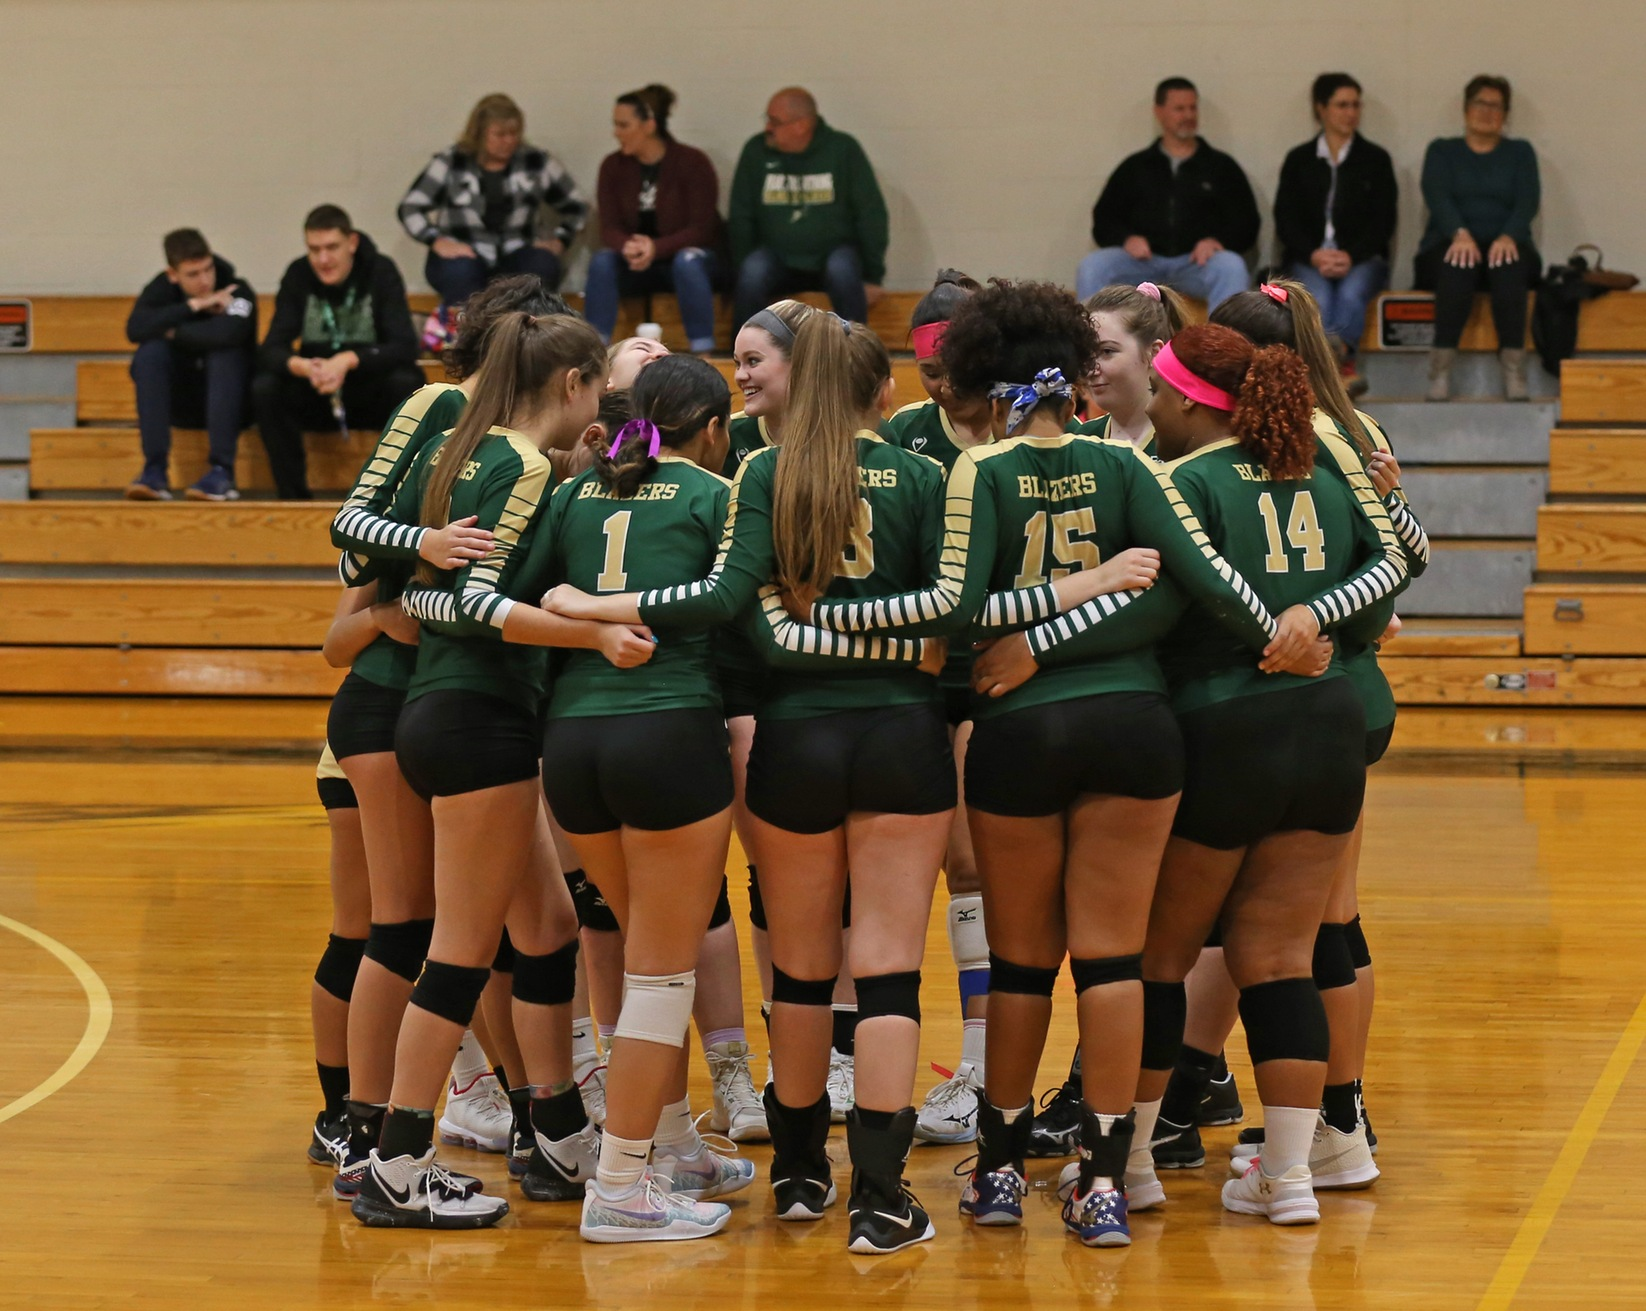 Women's Volleyball Comes Up Short In NECC Semi-Finals